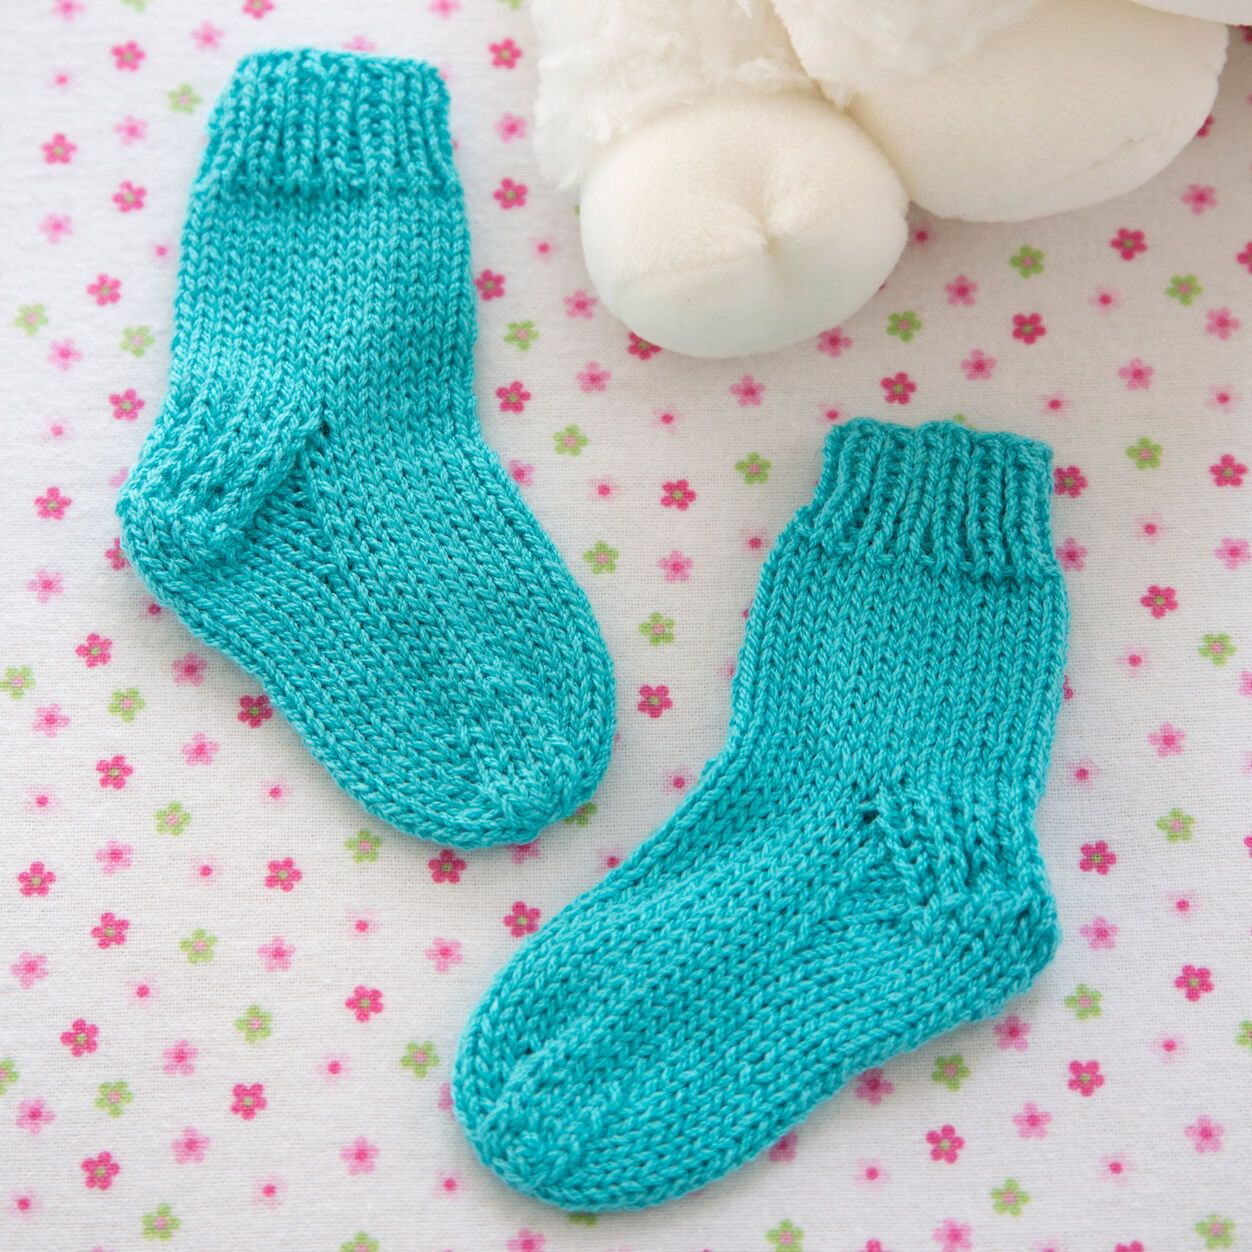 Red Heart Comfy Baby Socks   Yarnspirations in 2020   Baby ...